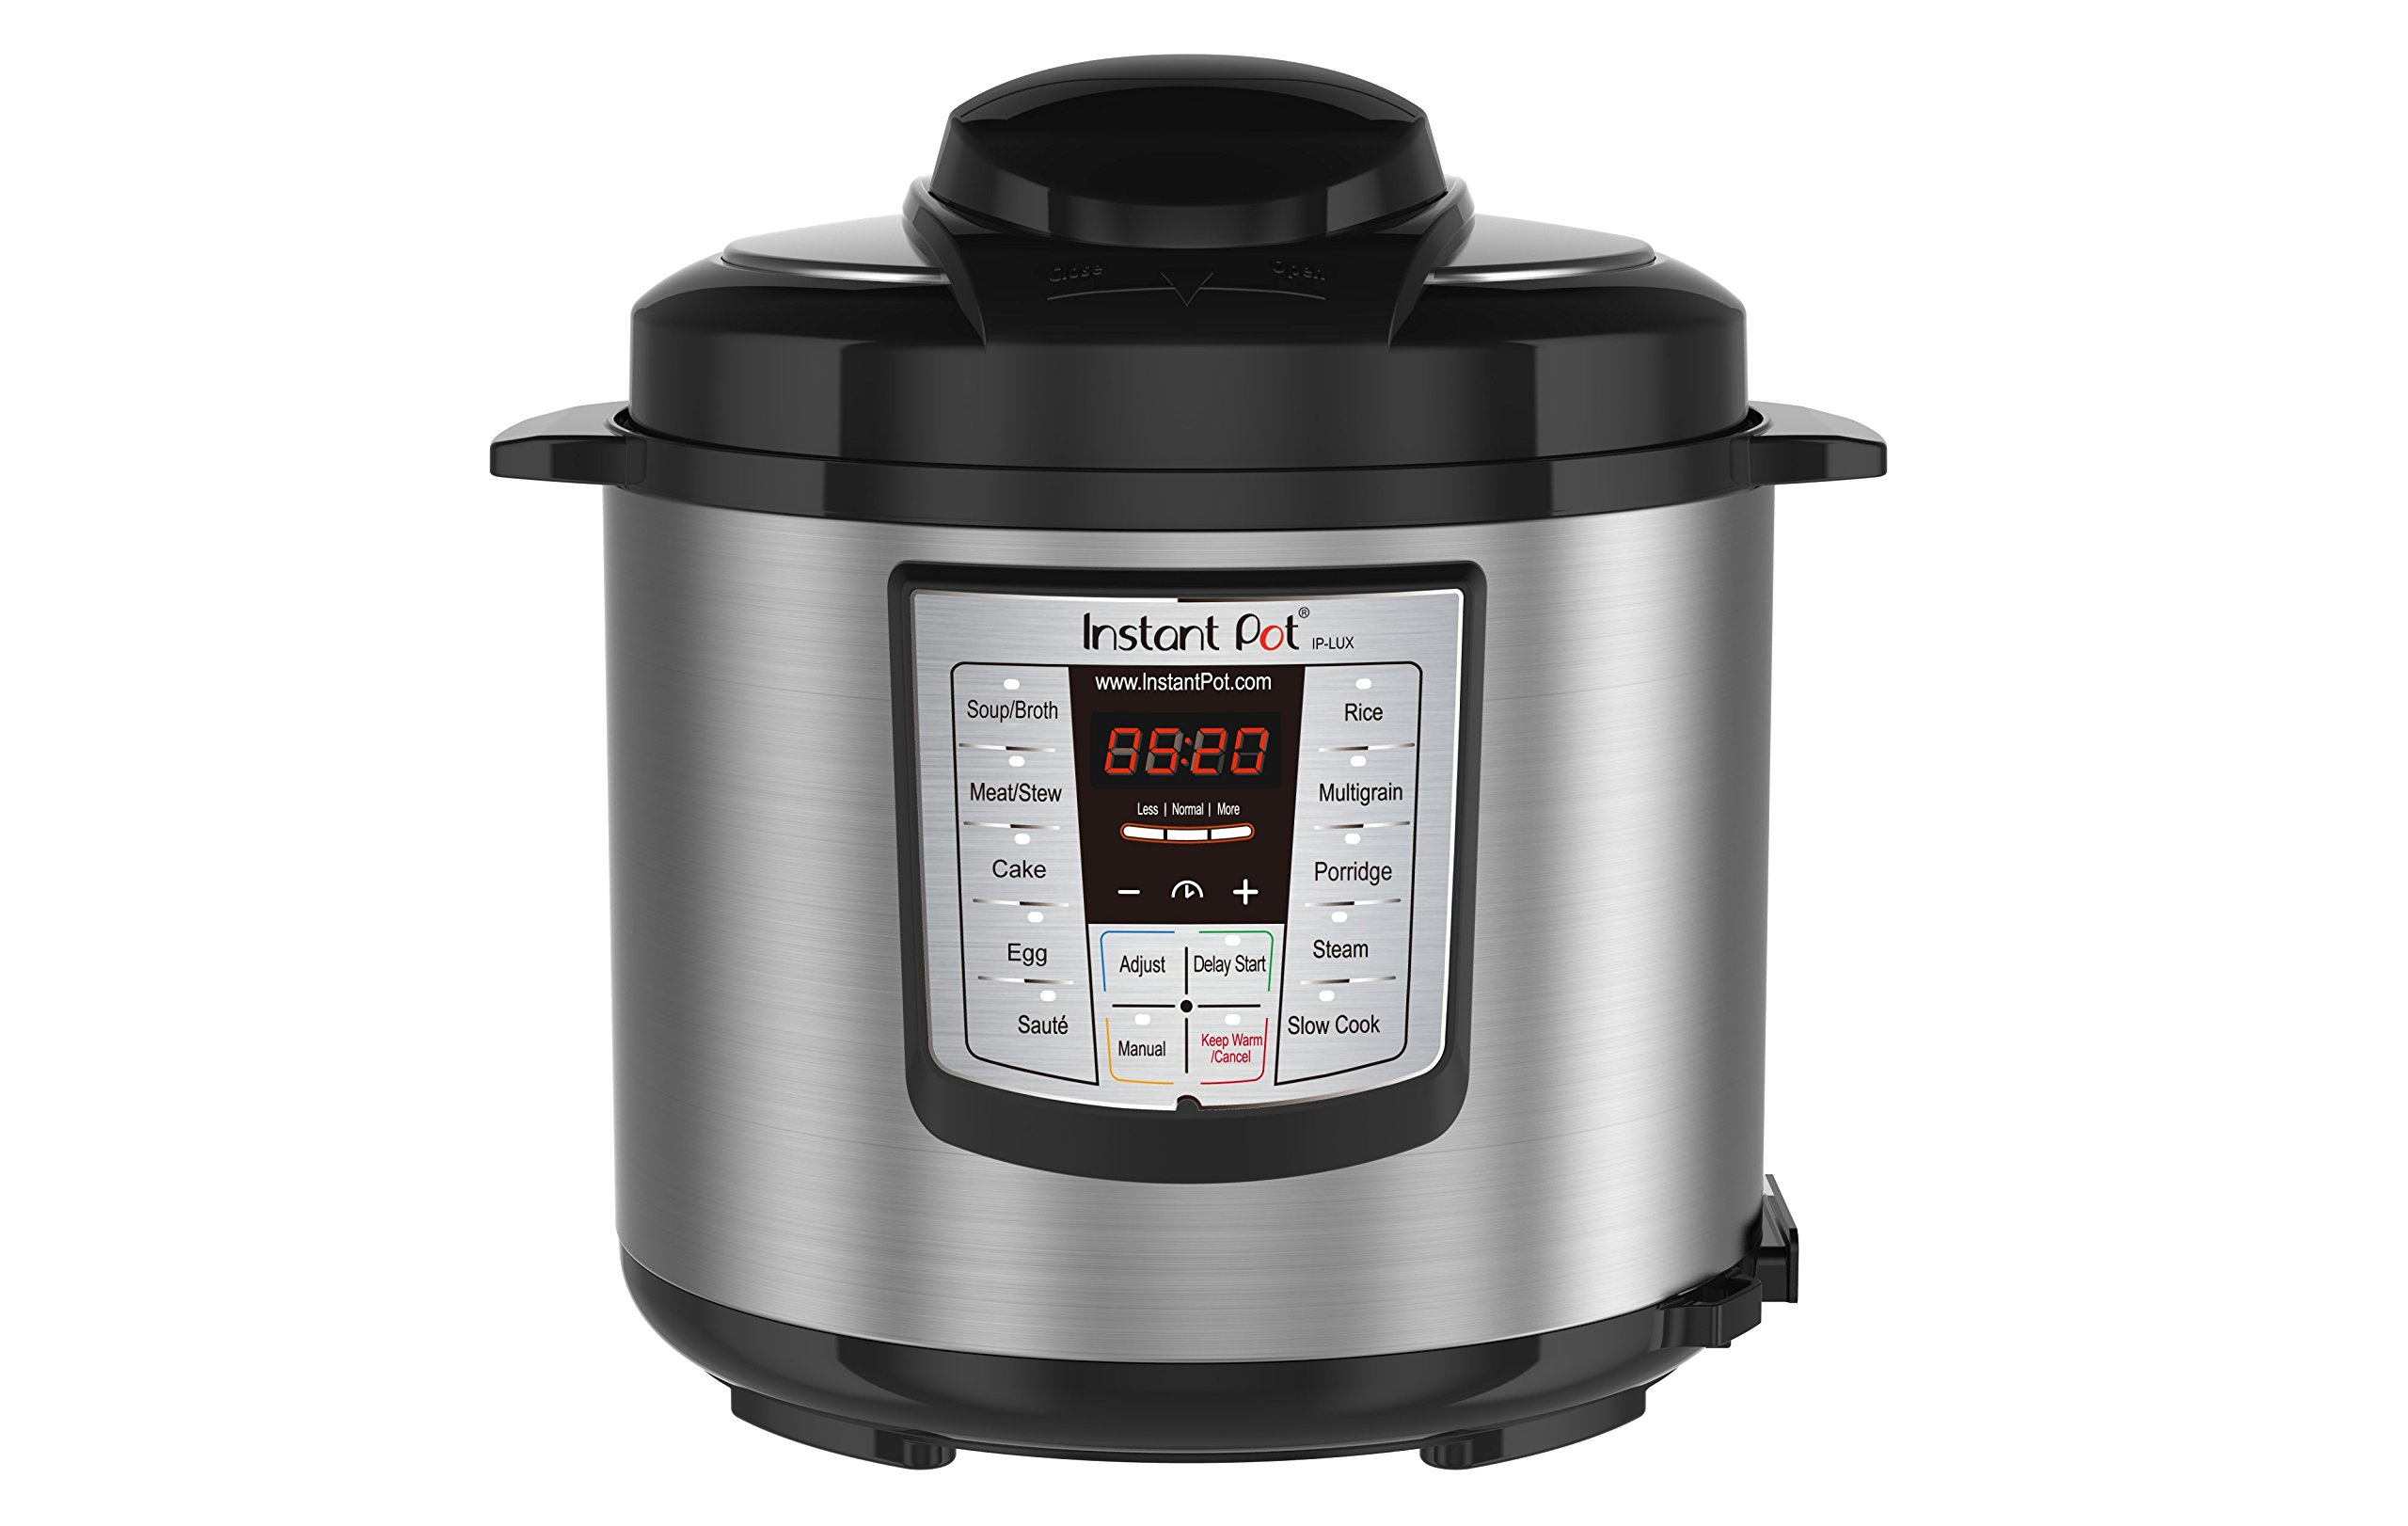 Instant Pot IP-LUX60 V3 Programmable Electric Pressure Cooker, 6Qt, 1000W by Instant Pot (Image #1)